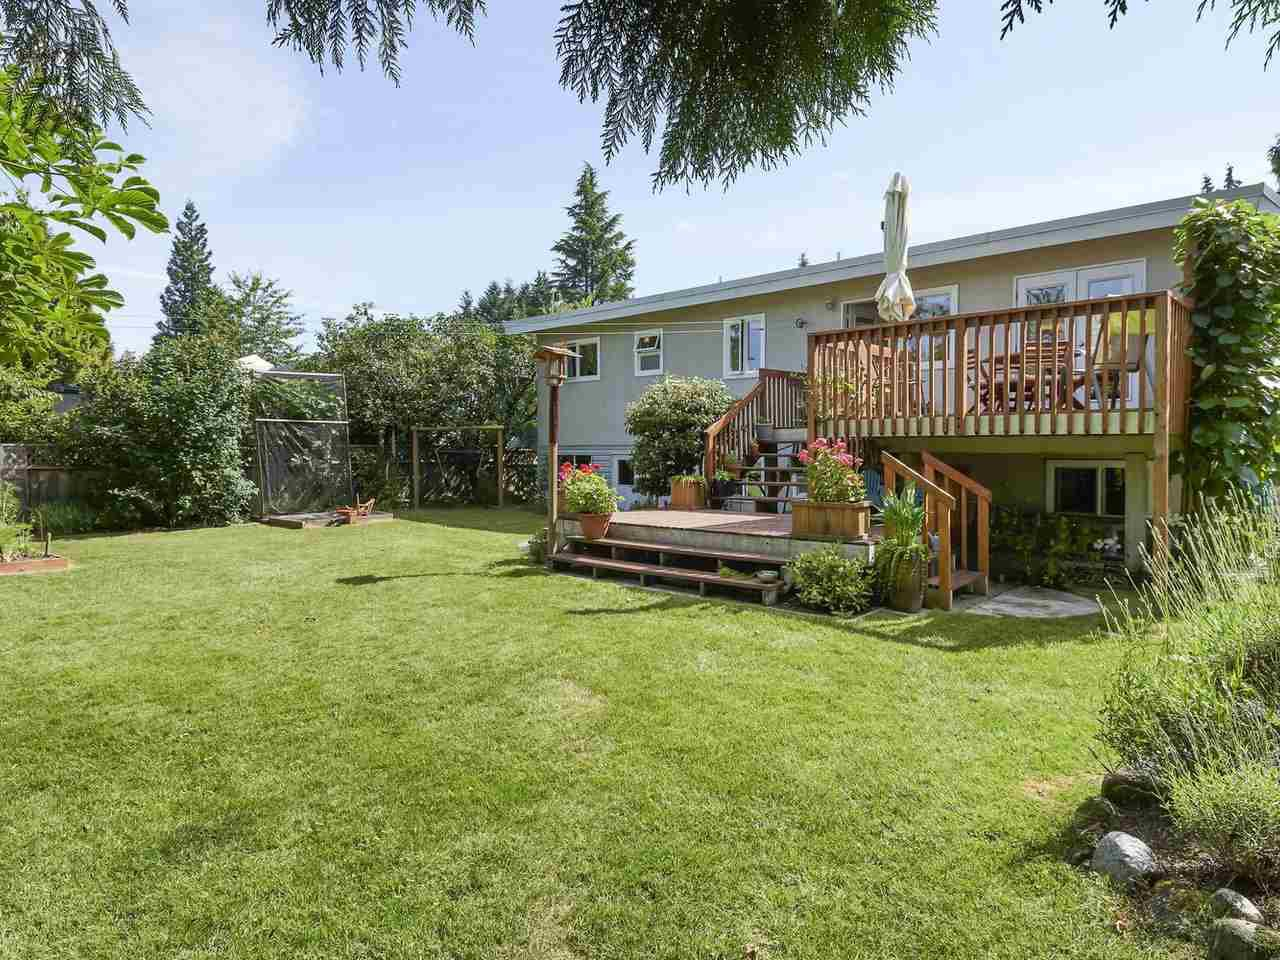 Photo 4: Photos: 814 LEVIS Street in Coquitlam: Harbour Place House for sale : MLS®# R2381563